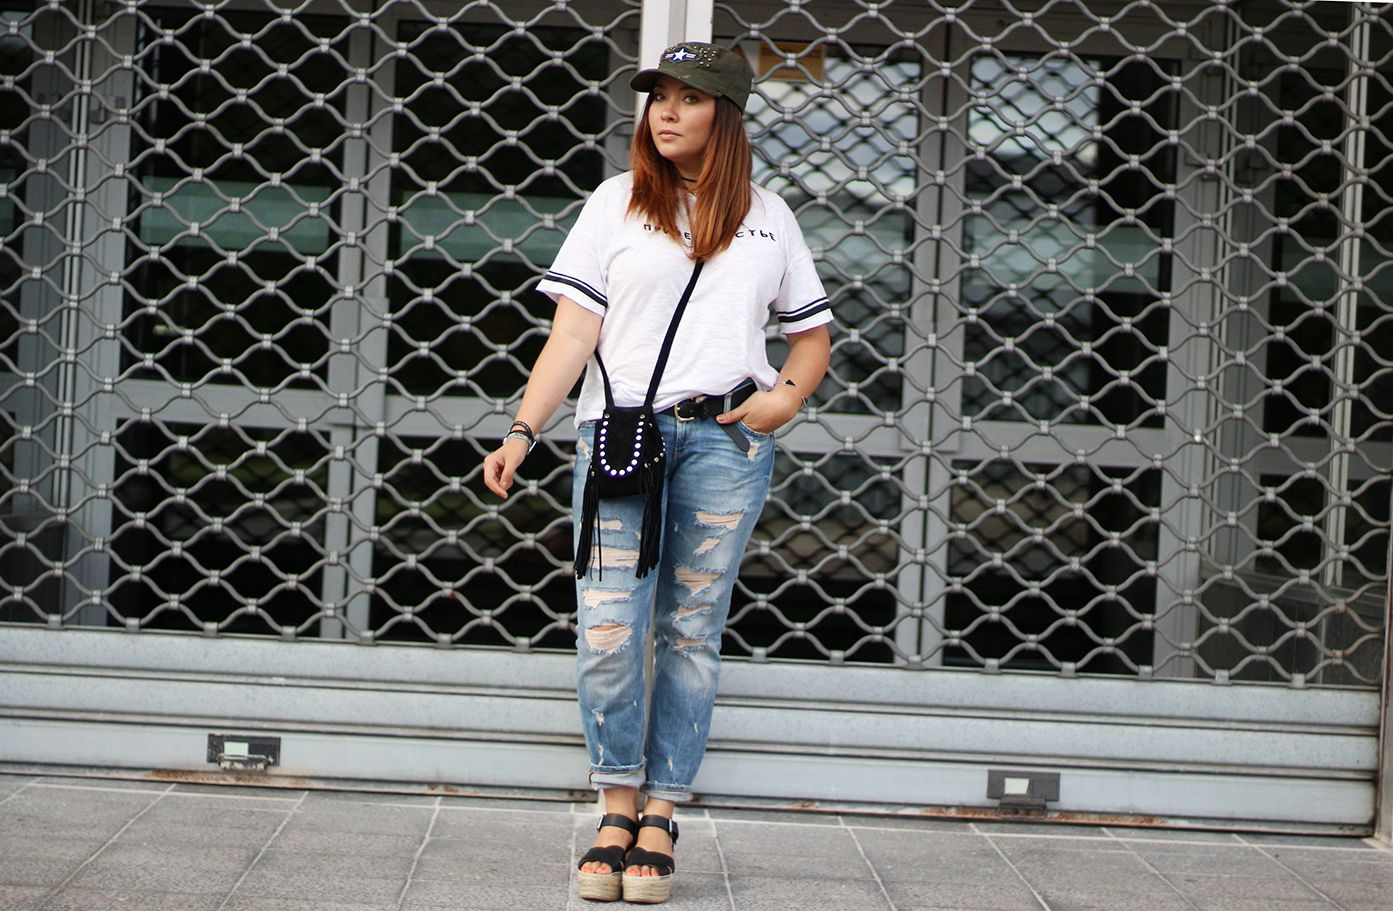 look militaire femme, casquette kaki, military look, jean boyfriend, pull and bear, zara, jennyfer, sac franges, hipanema, sandales compensées, casual style, look, blogueuse mode, fashion blogger